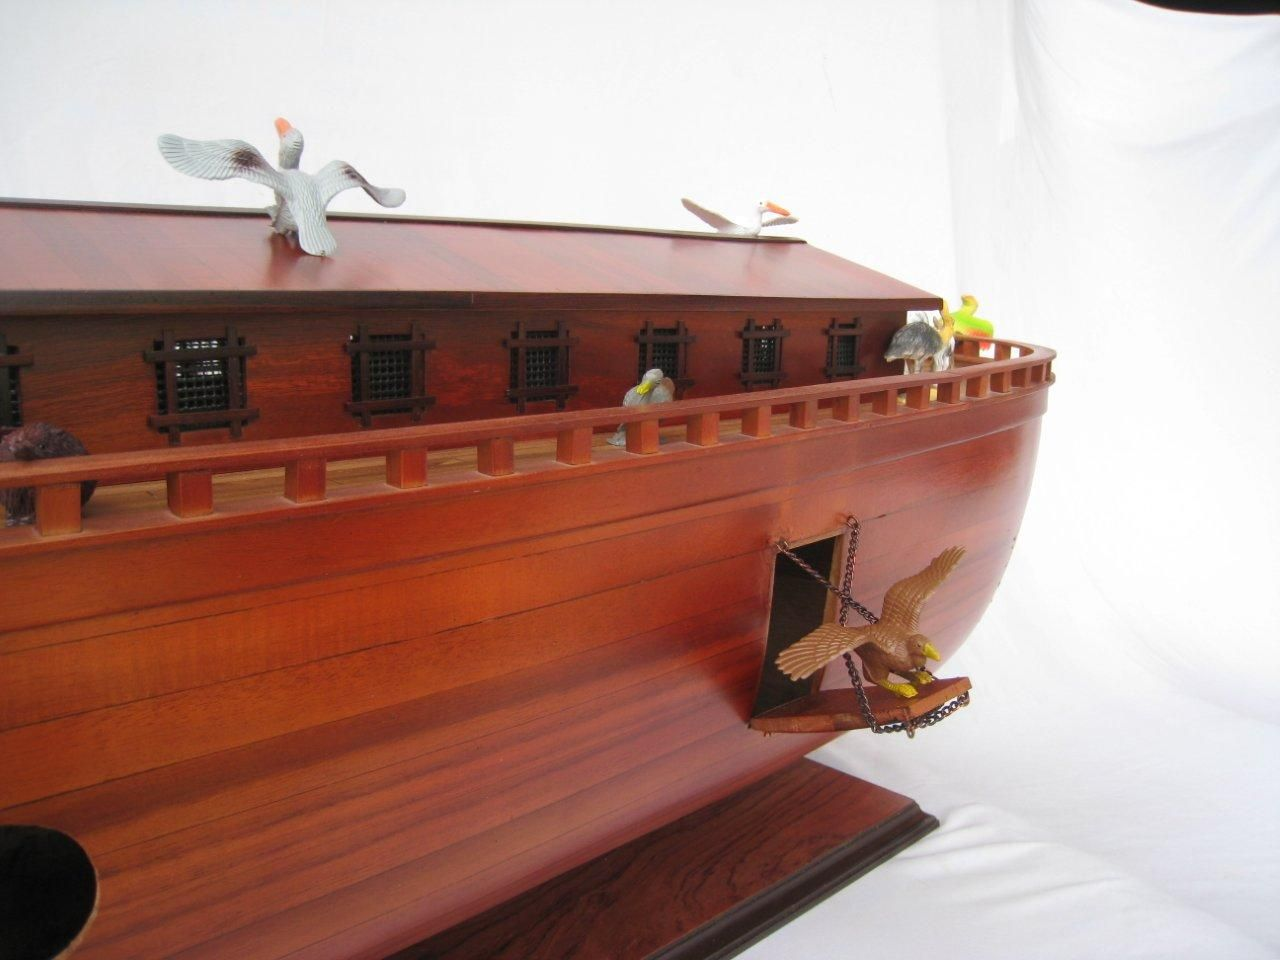 2043-12573-Noahs-Ark-Model-Boat